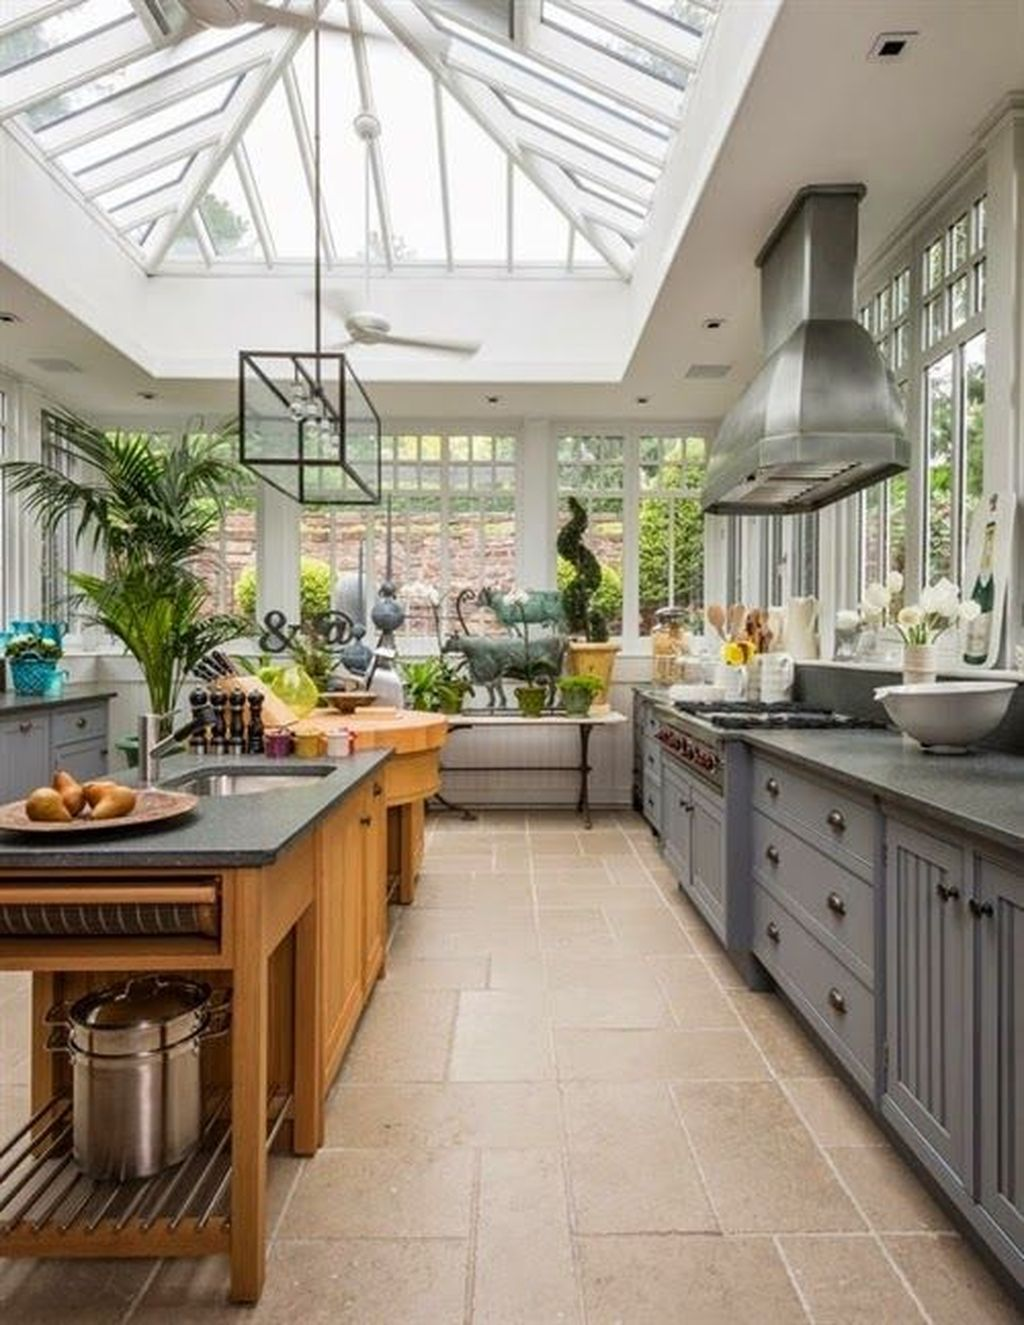 40 Glass Ceiling Design And Ideas The Ceiling Doesn T Appear Breakable Truly There S No Glass Ce Kitchen Inspirations Conservatory Kitchen Kitchen Remodel